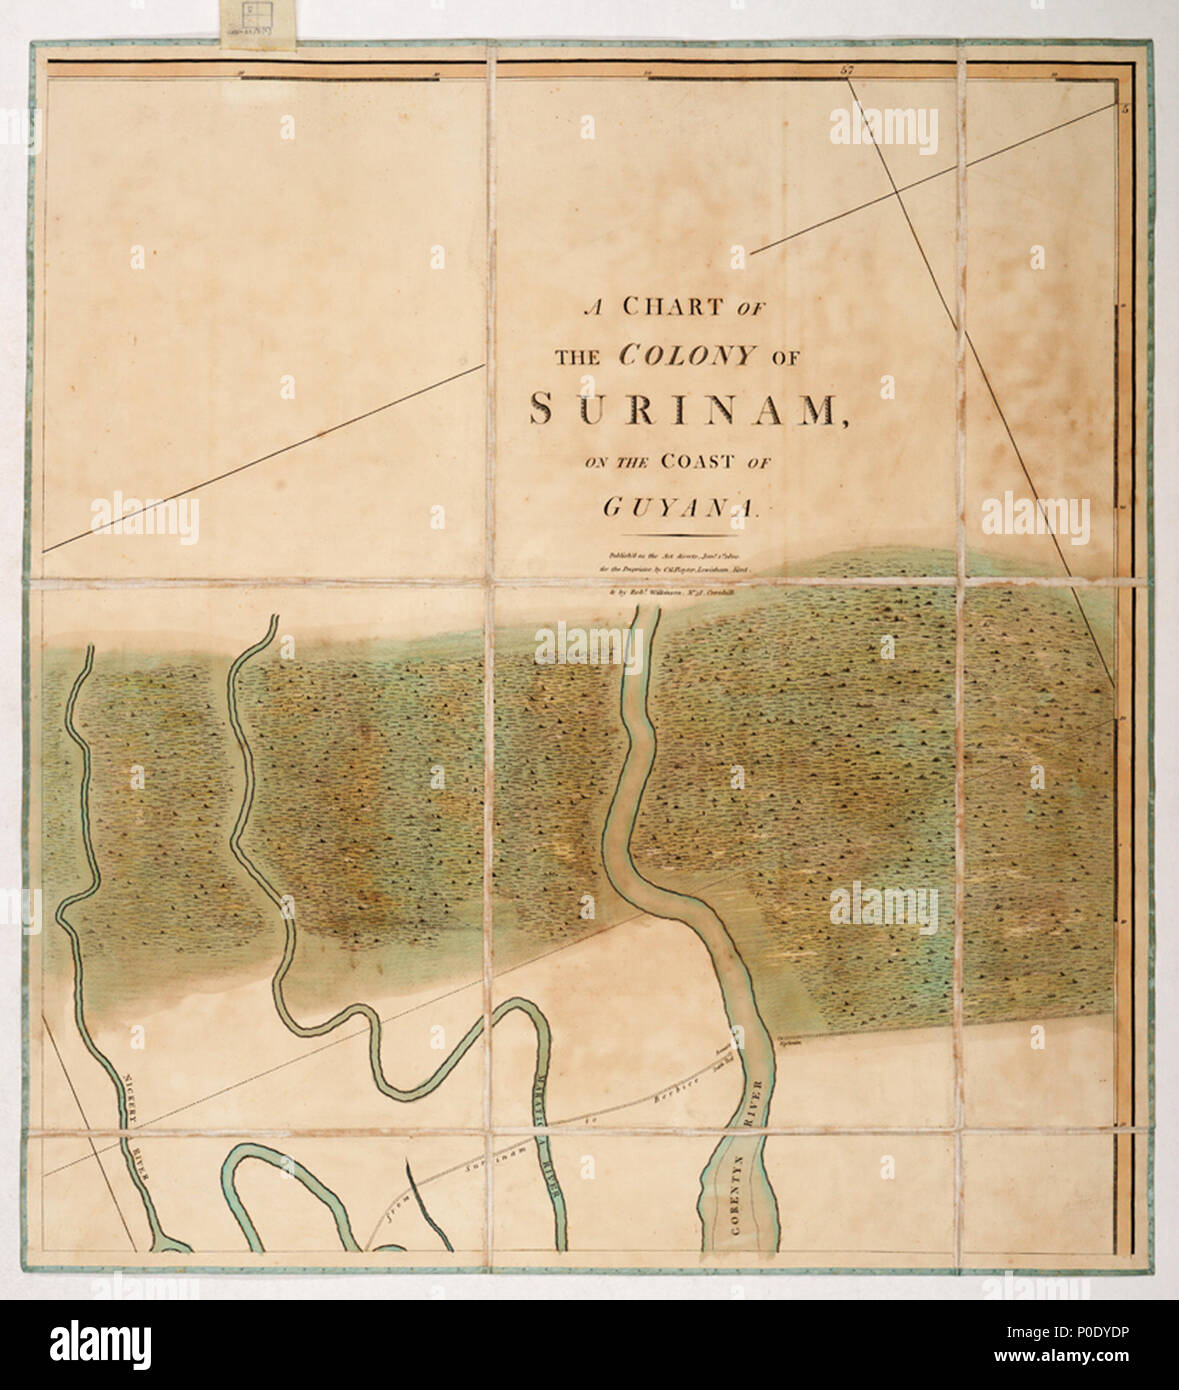 .  English: A chart of the colony of Surinam, on the coast of Guyana.Four sheets. Hand col. engr. Medium: Segmented and backed. Scale: 1:200 000 (bar). Cartographic Note: North at 336 degrees. Graduated. Soundings and seabed soundings shown. Scale in nautical miles. Additional Places: Suriname, Commewijne River, Corantijn River. Contents Note: Property boundaries and vegetation are shown on the land, Sailing directions include a note about dangerous banks where the Thorn Sloop of War ran aground in 1796 and was obliged to throw her guns overboard. Gren82/3(2) A chart of the colony of Surinam,  - Stock Image